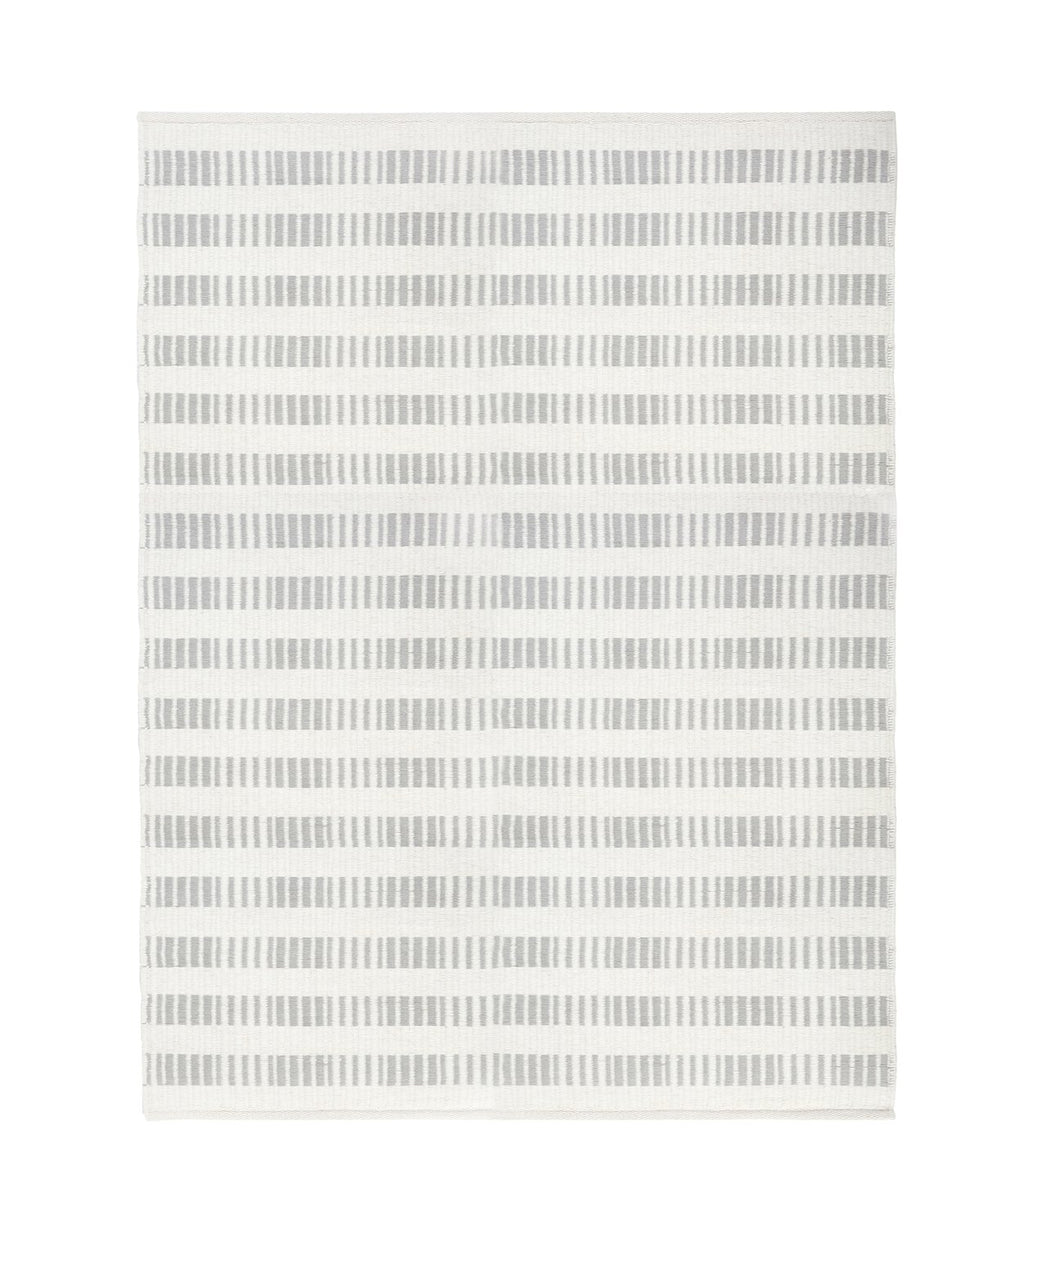 BROOKE HANDWOVEN RUG - LIGHT GREY